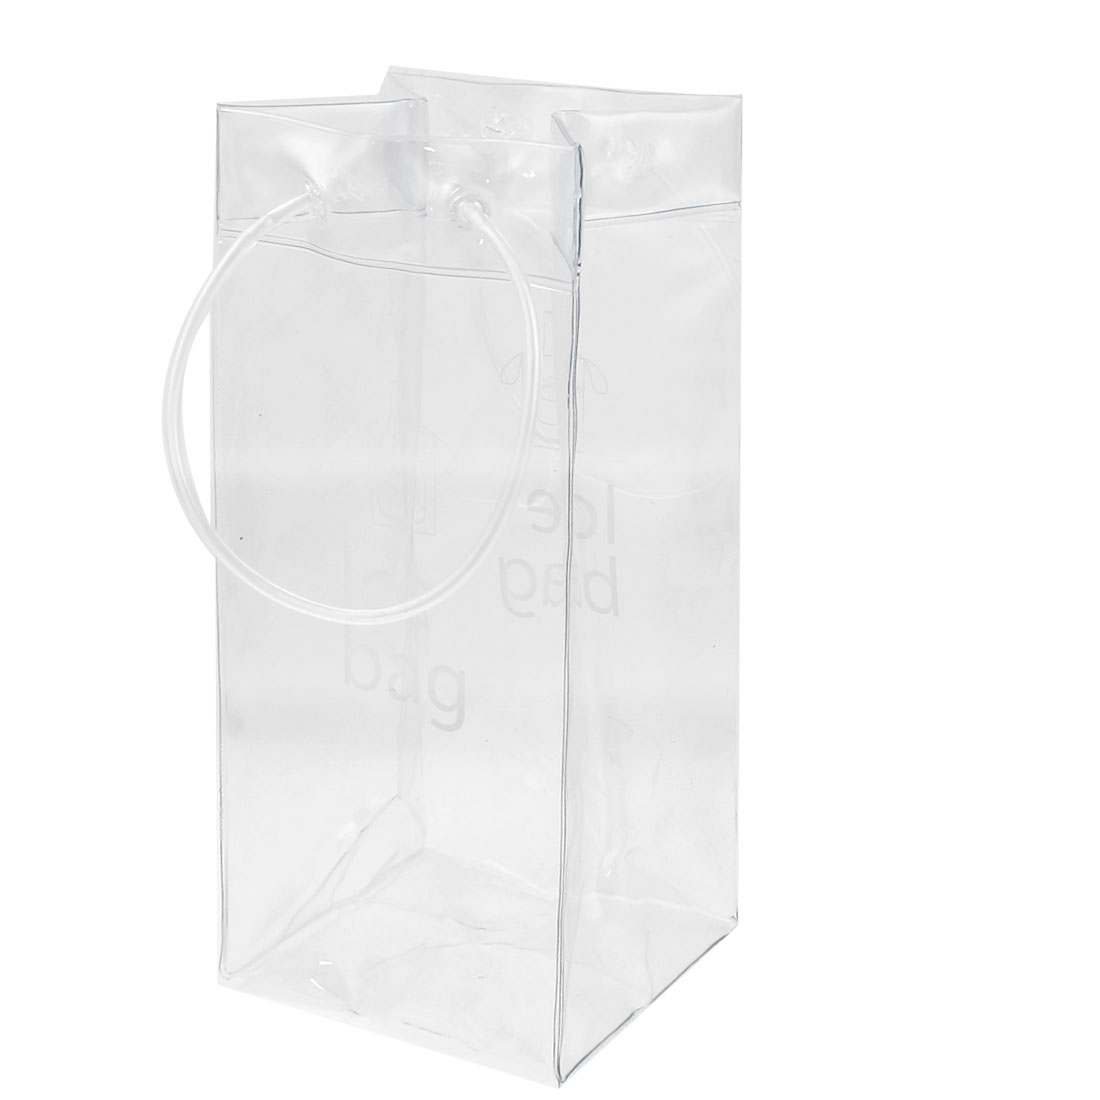 Clear PVC Plastic Ice Bag Champagne Wine Bottle Cooler Ice Freezable Carrier